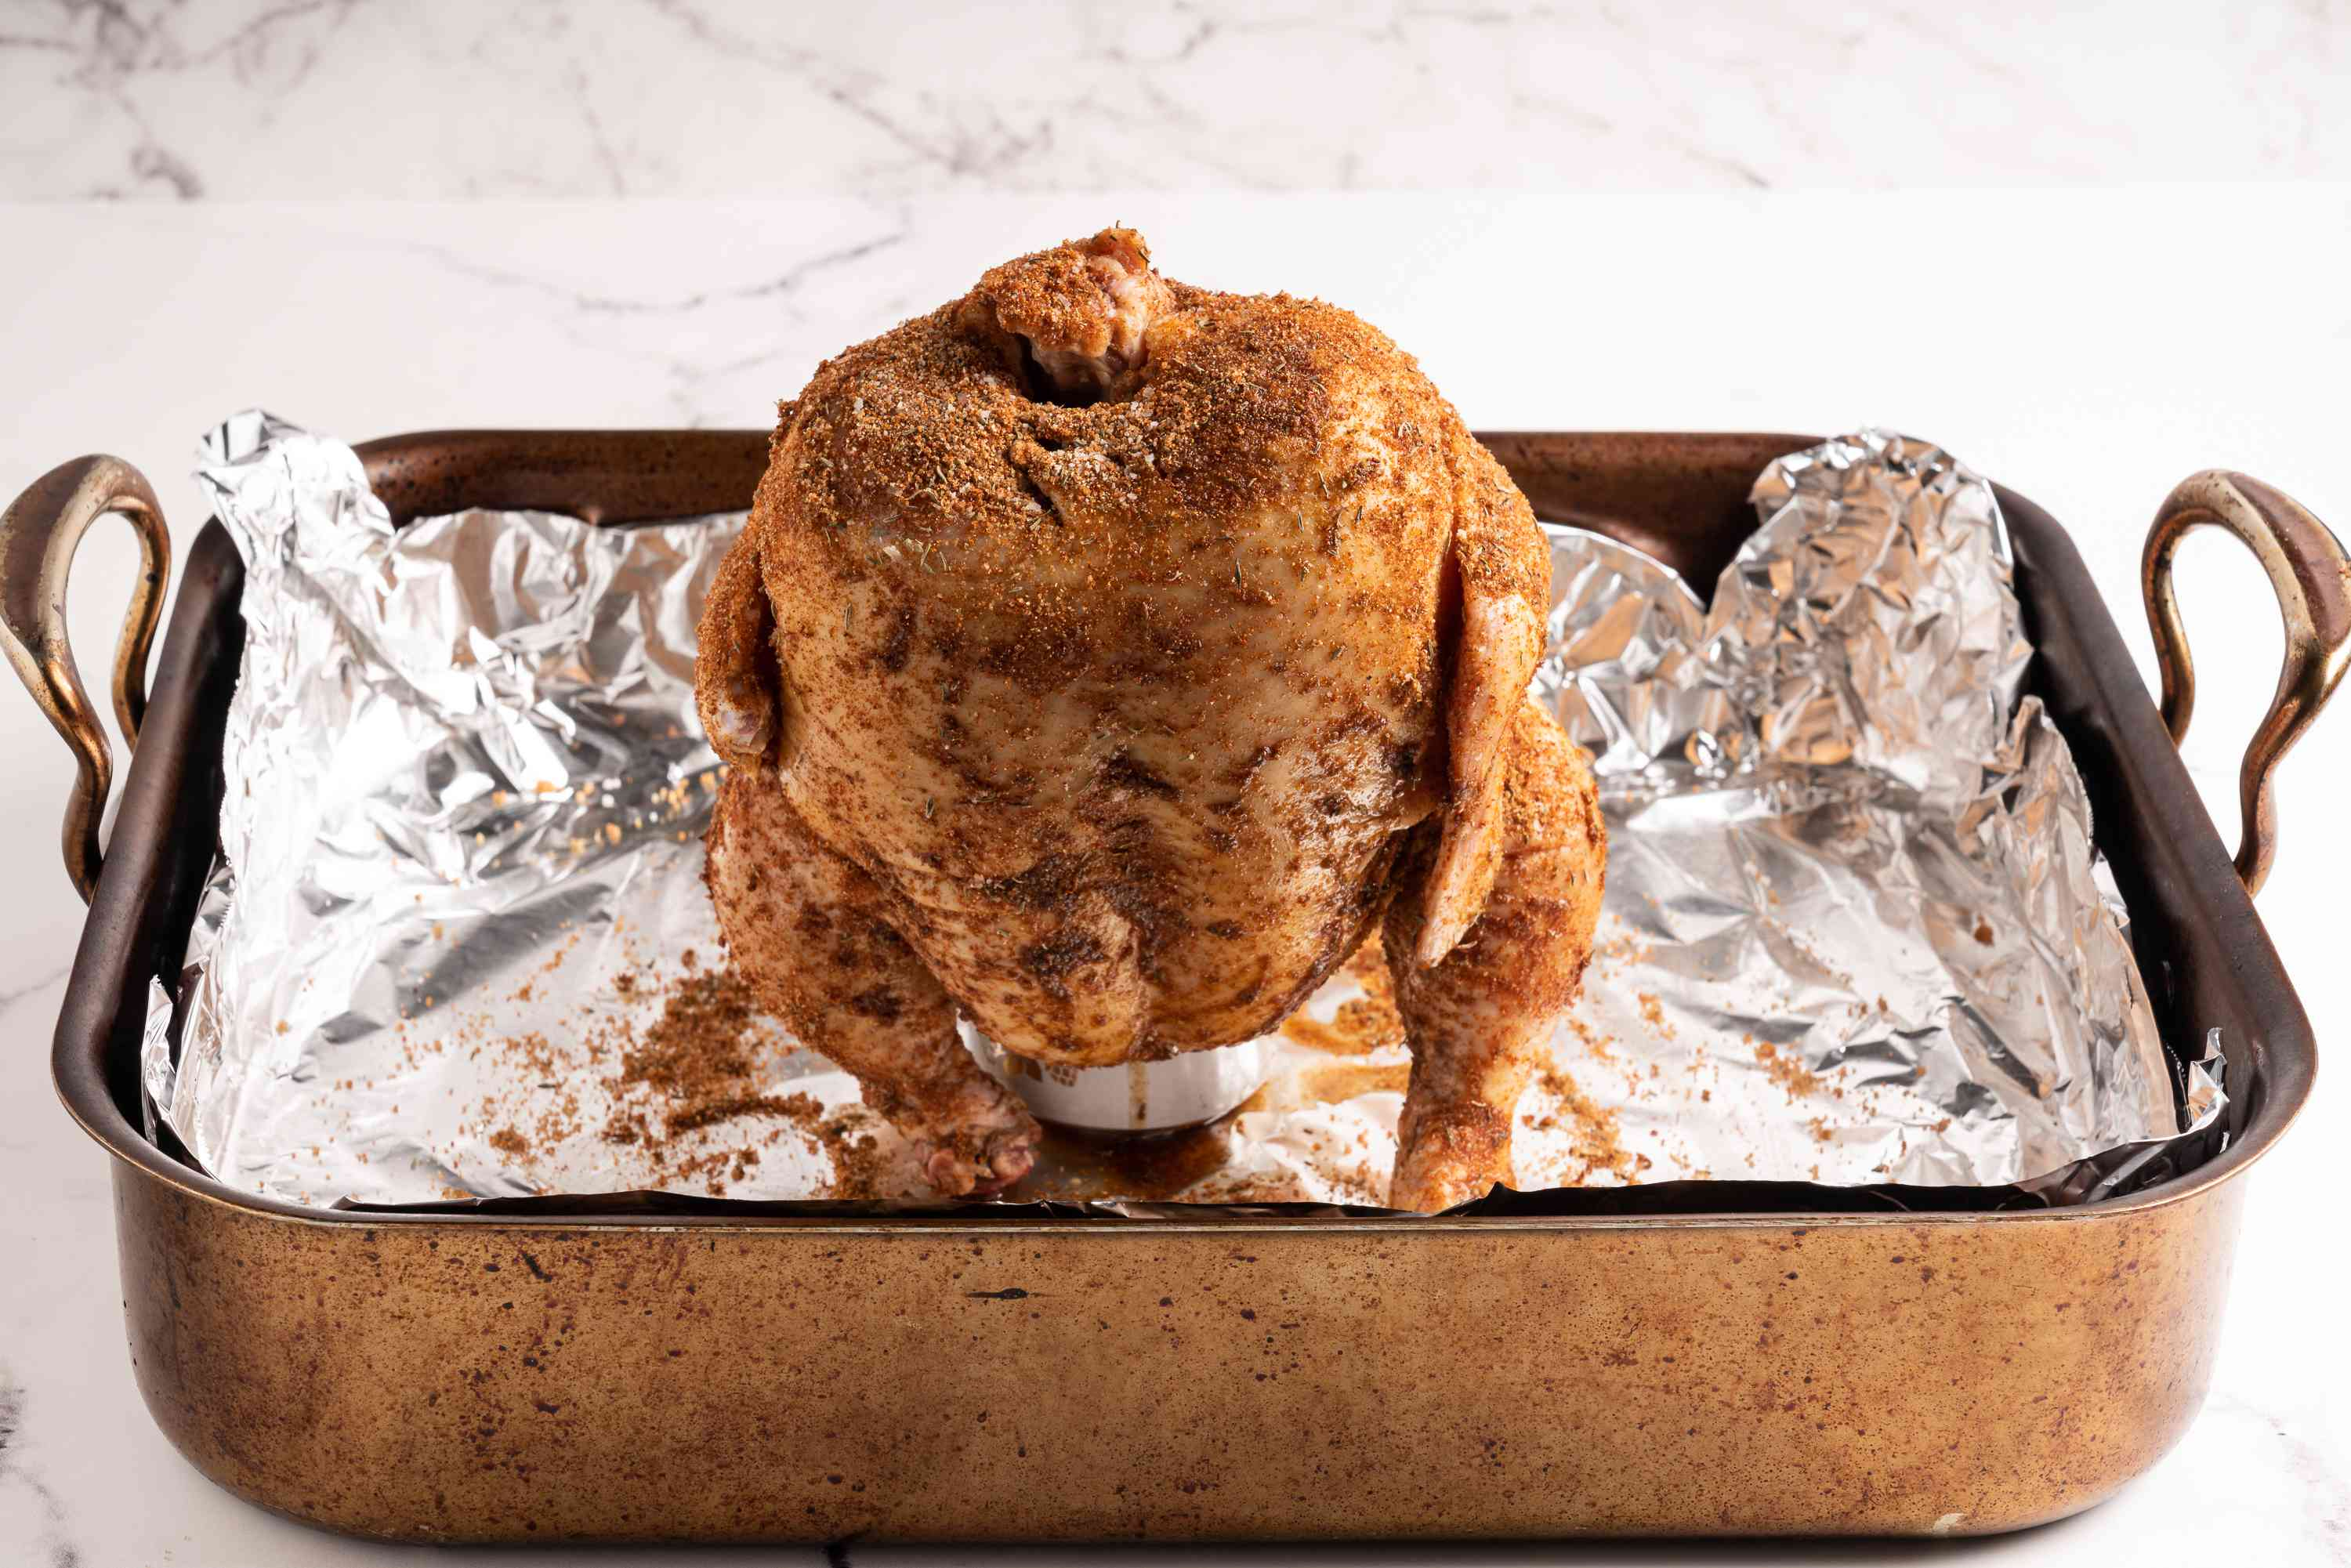 Stand up the chicken with the large cavity down and place it on top of the half-filled can